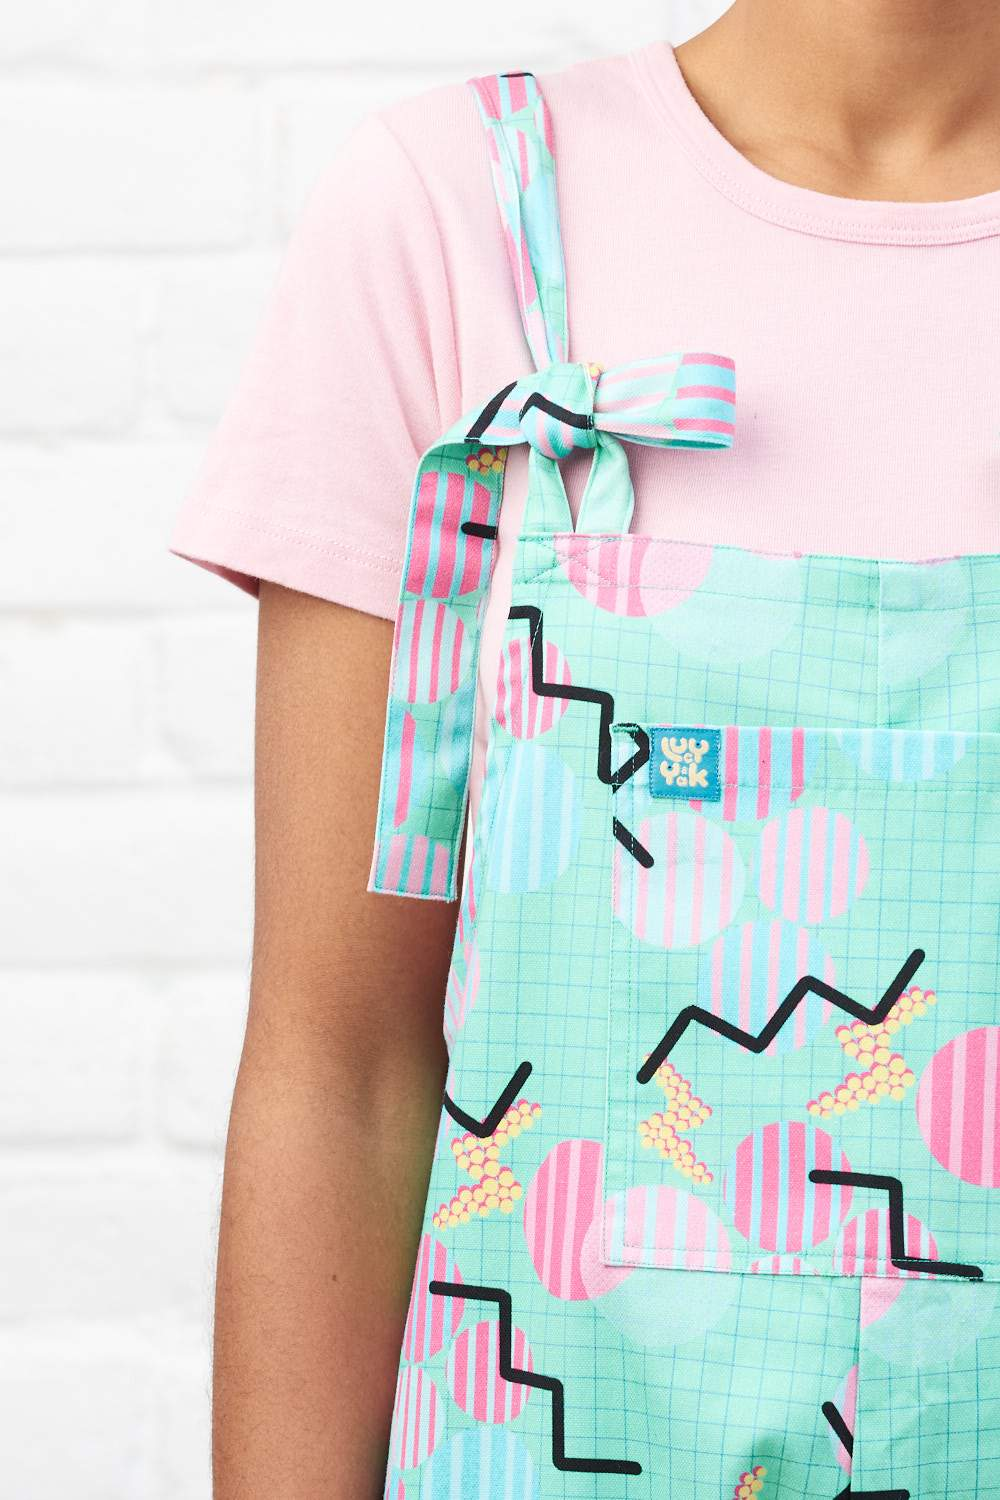 'Kapeesh' Limited Edition Artist collaboration Dungarees